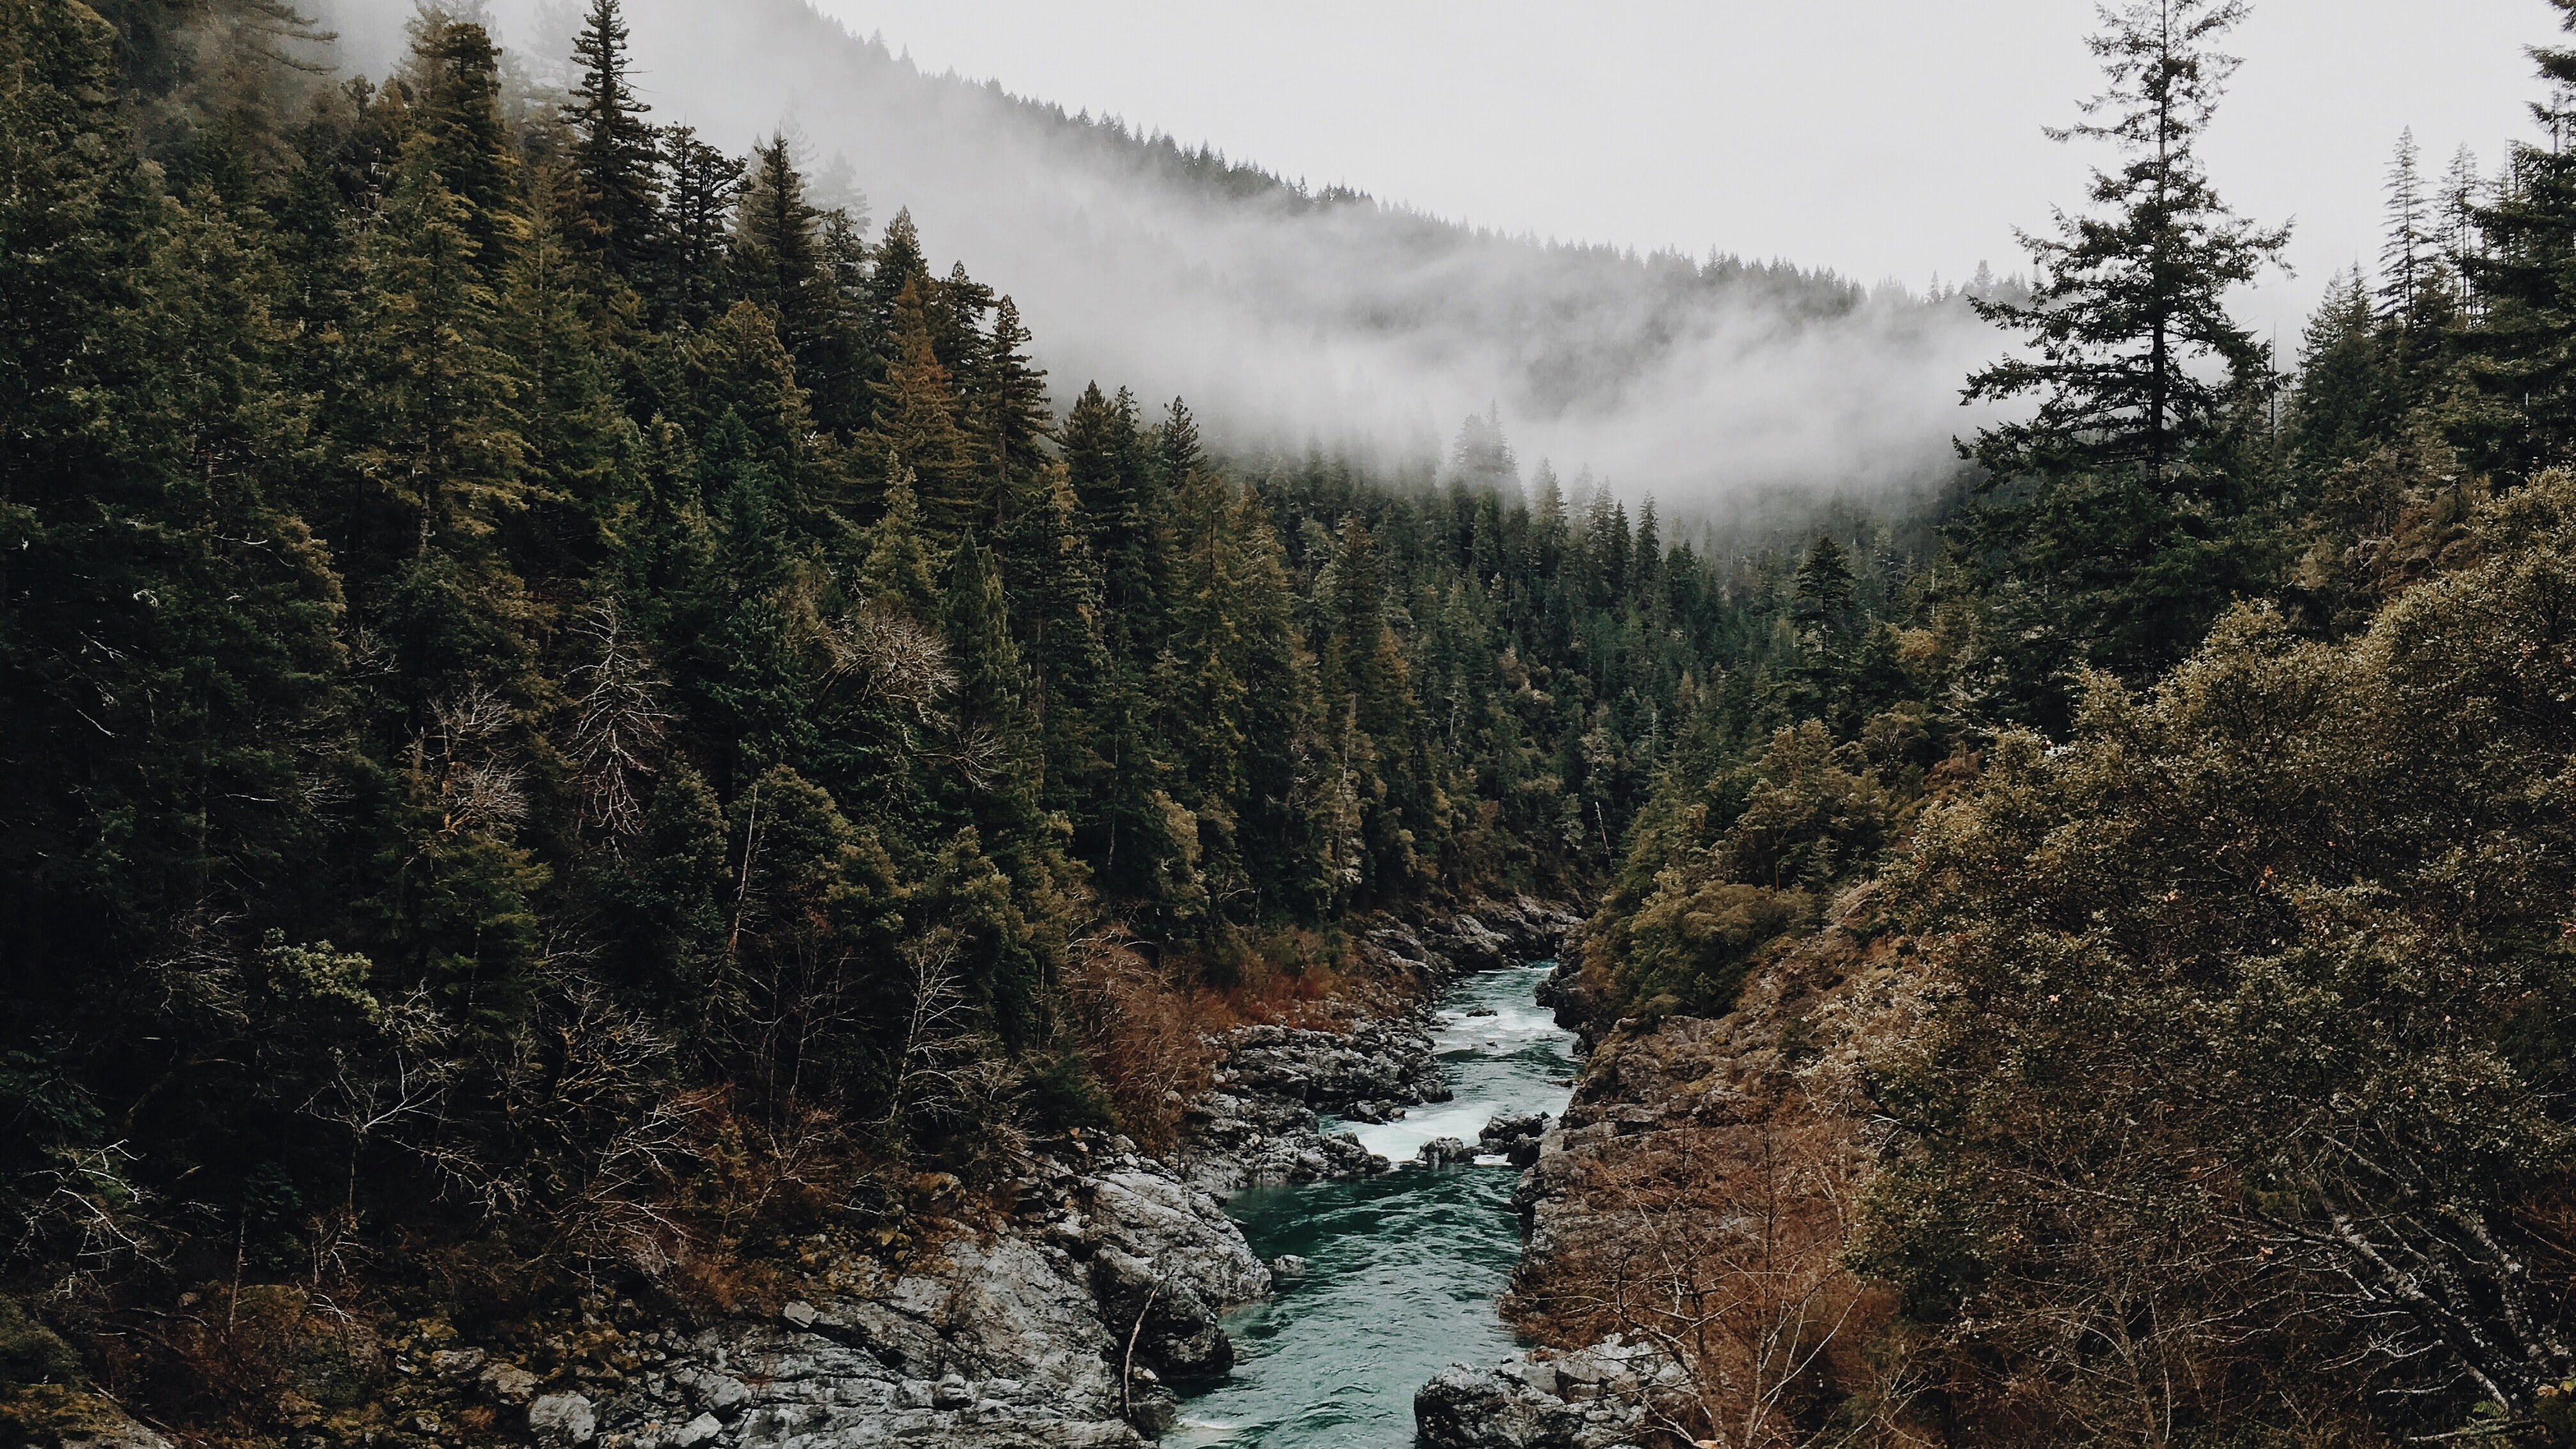 A clear stream on a rocky bed in a foggy forest